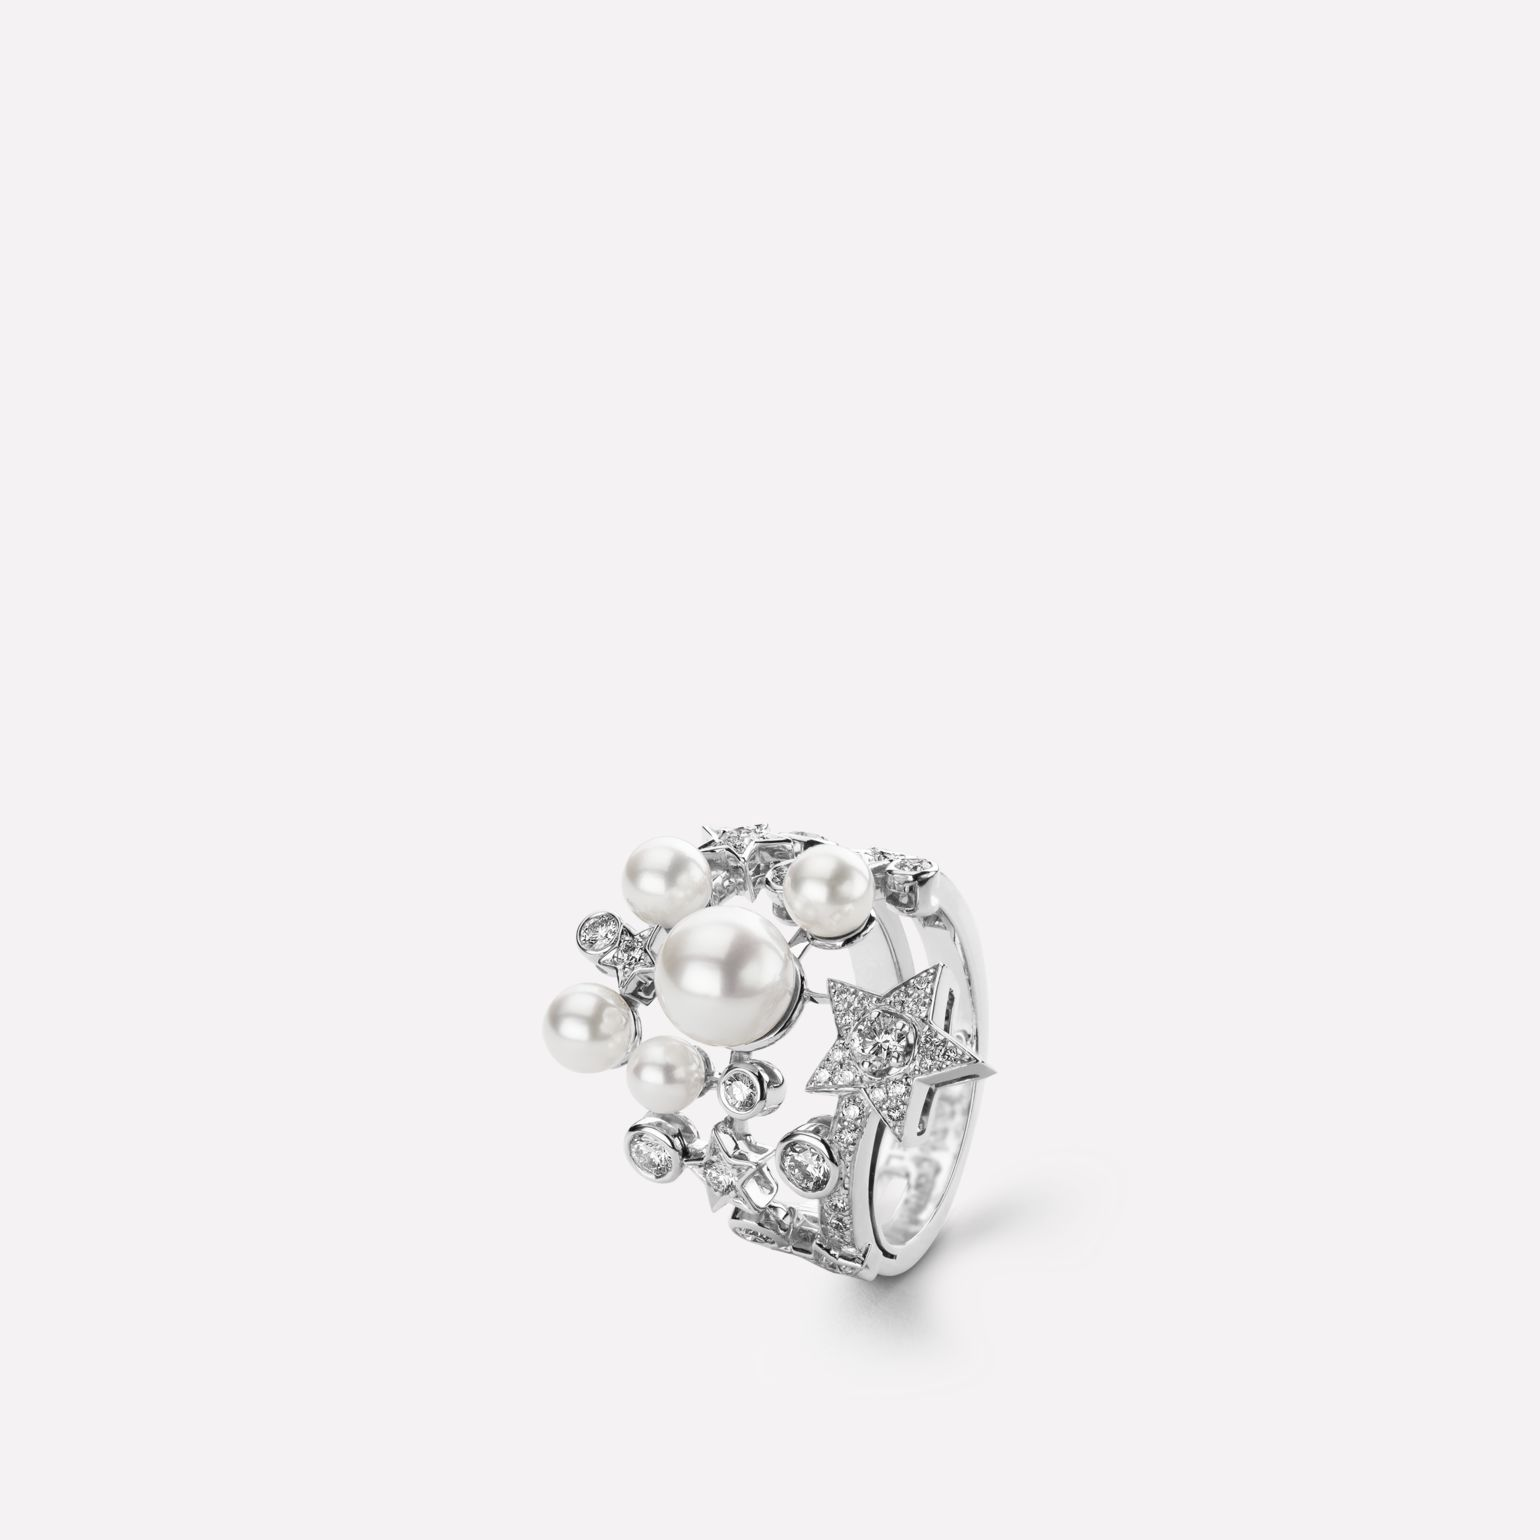 Comète Perlée ring 18K white gold, diamonds, cultured pearls